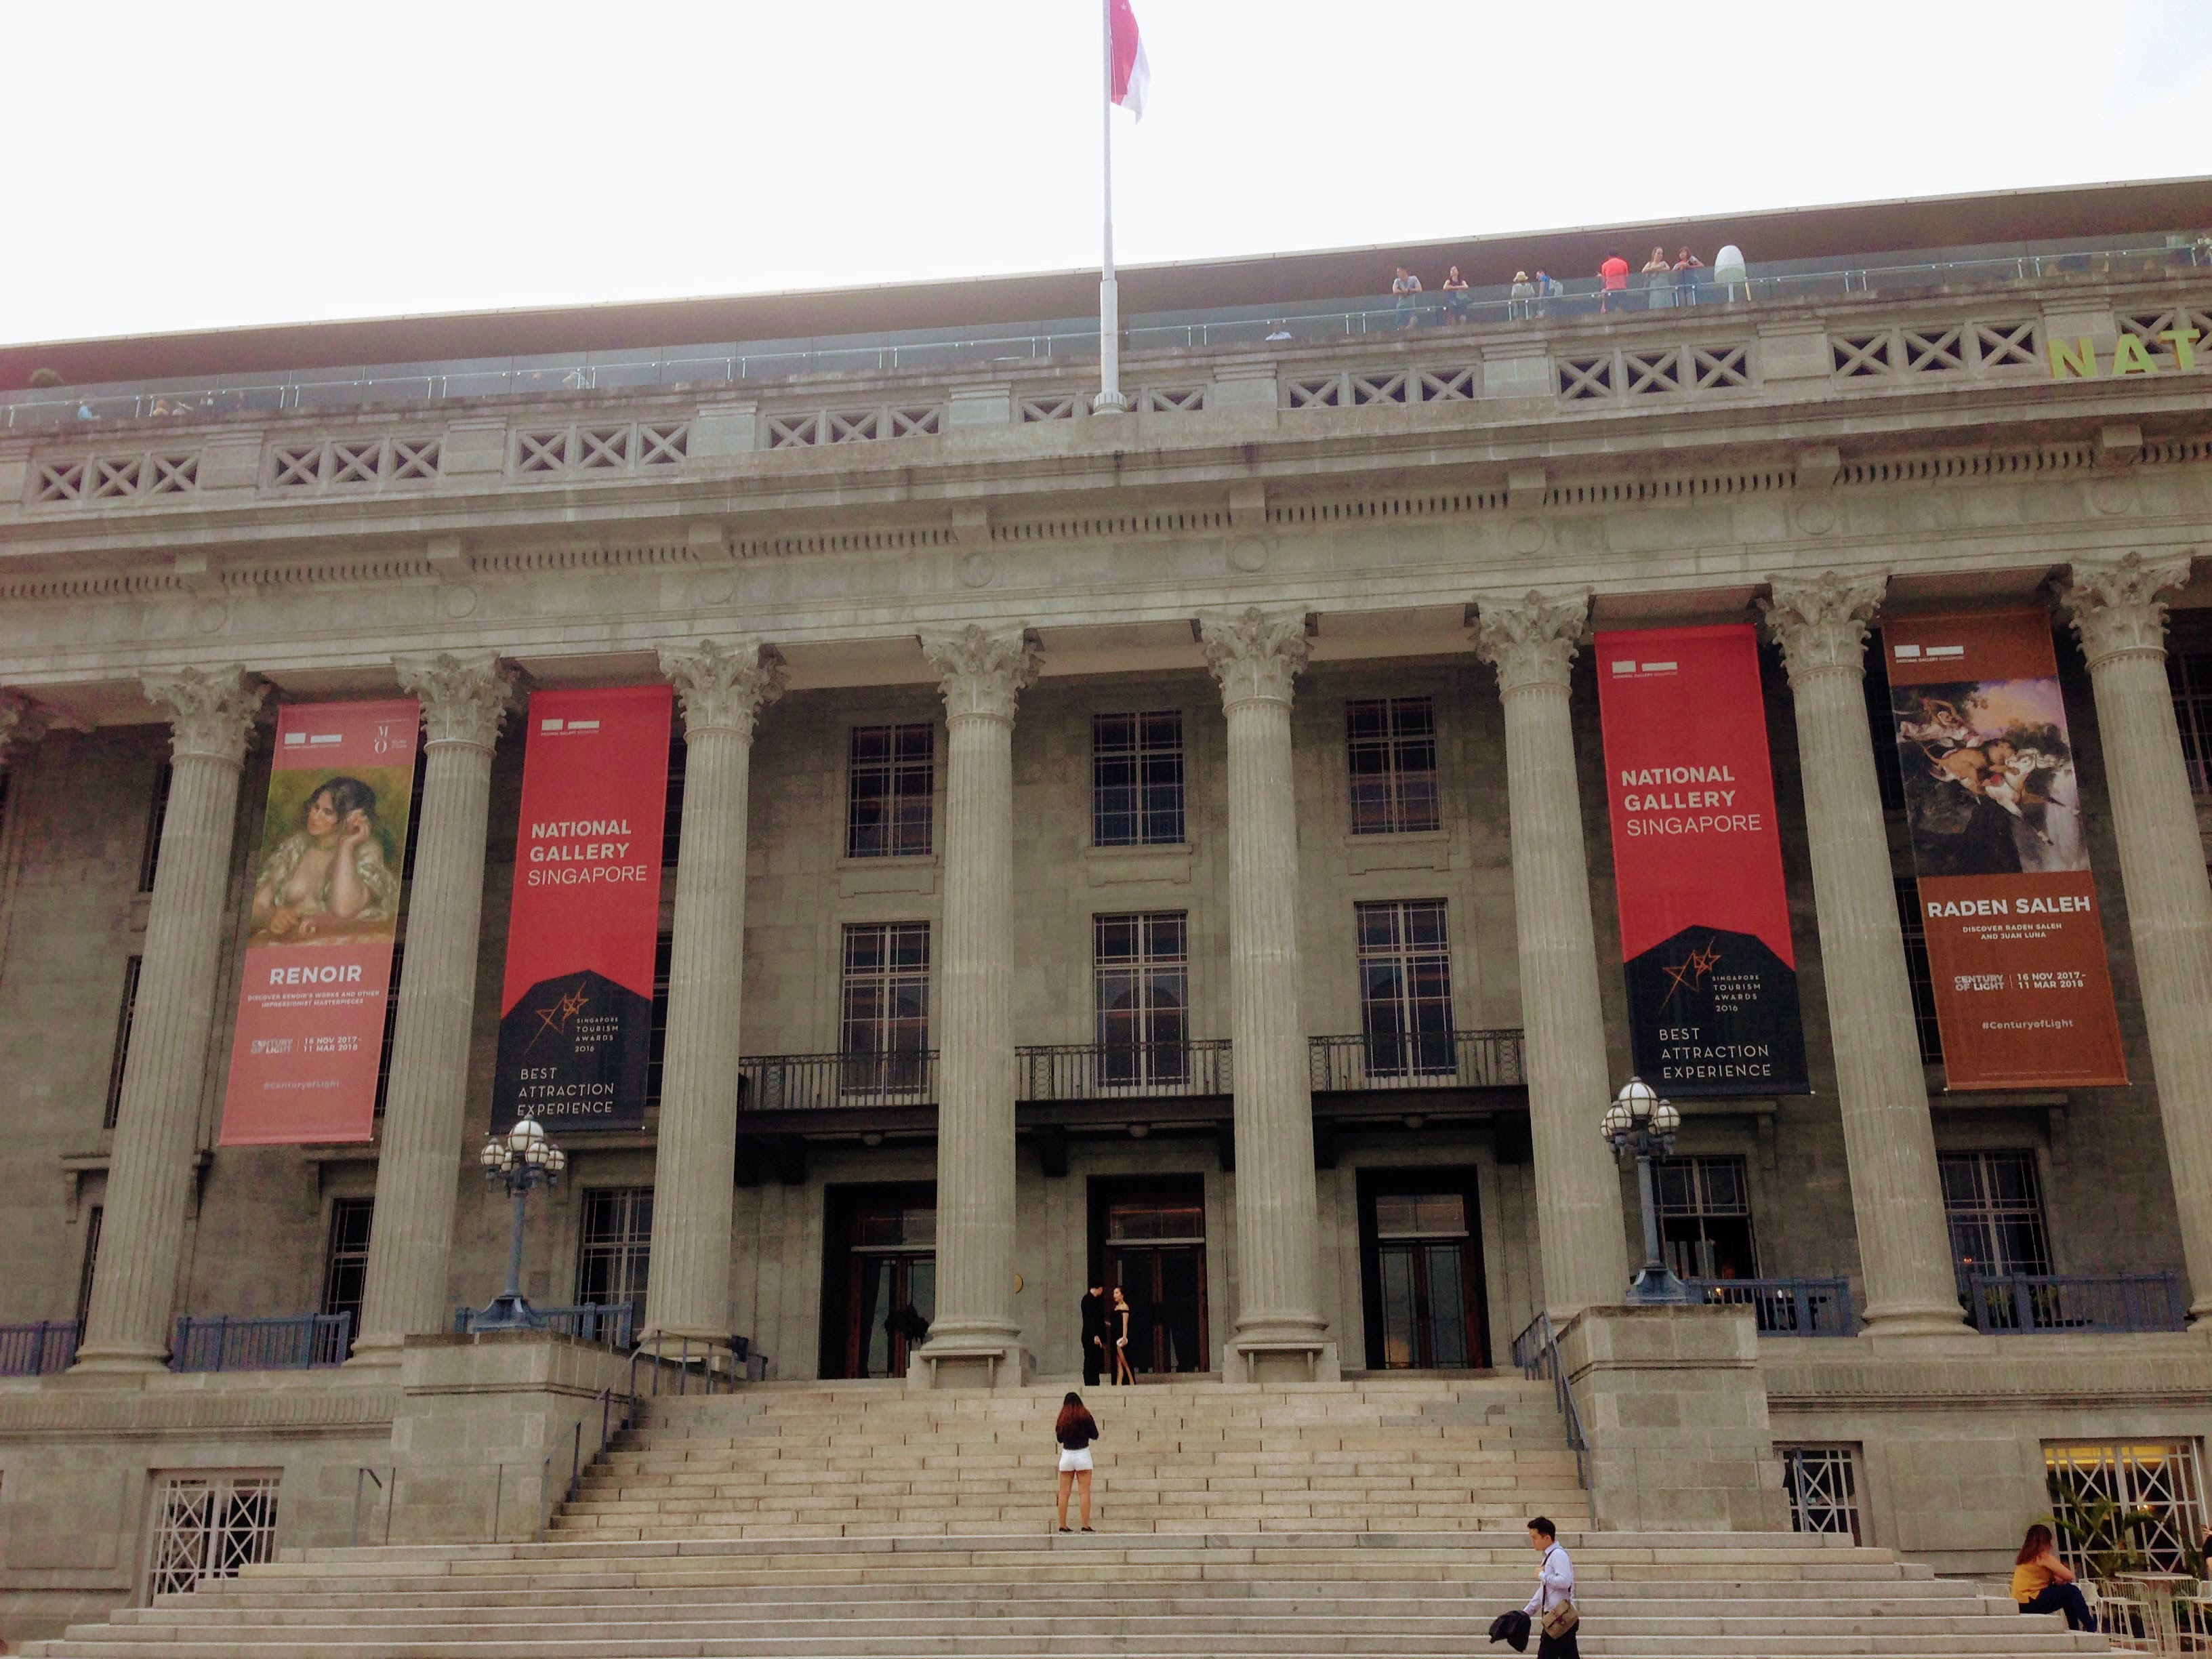 Singapore National Gallery art museum